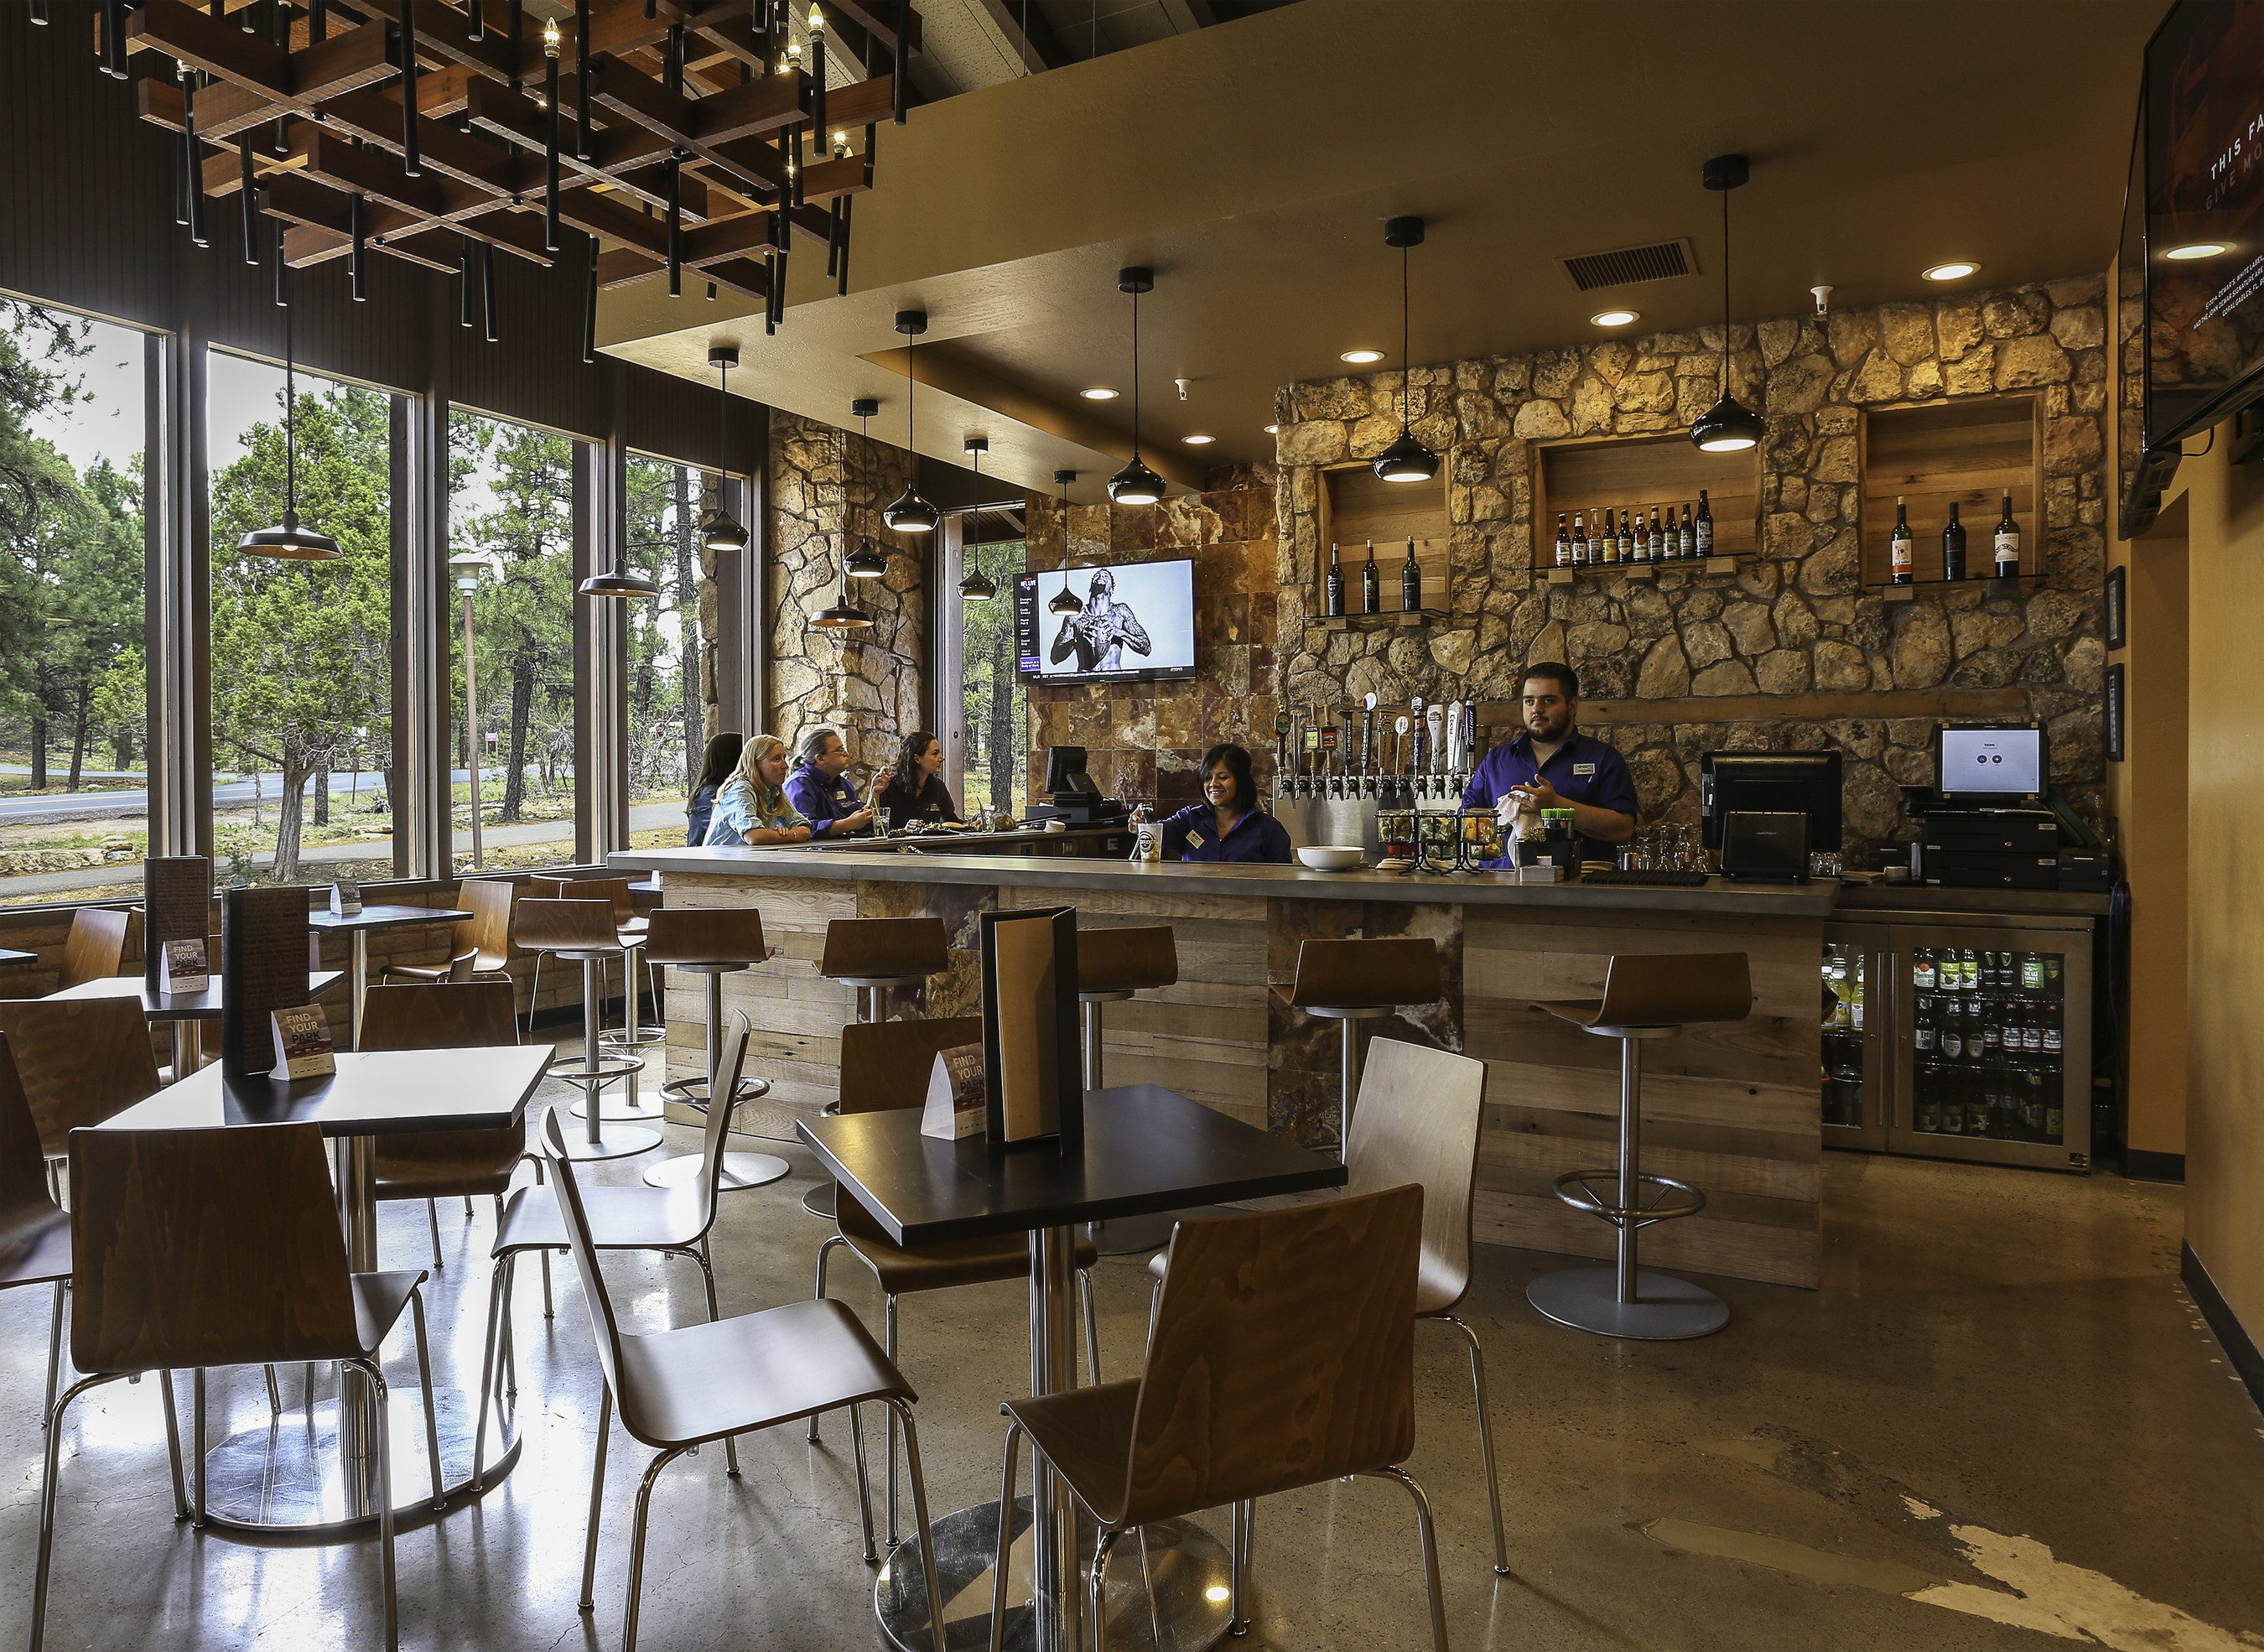 Yavapai Tavern has been transformed into a full-service bar, featuring cocktails with locally-sourced ingredients, as well as beers and wines from the region.